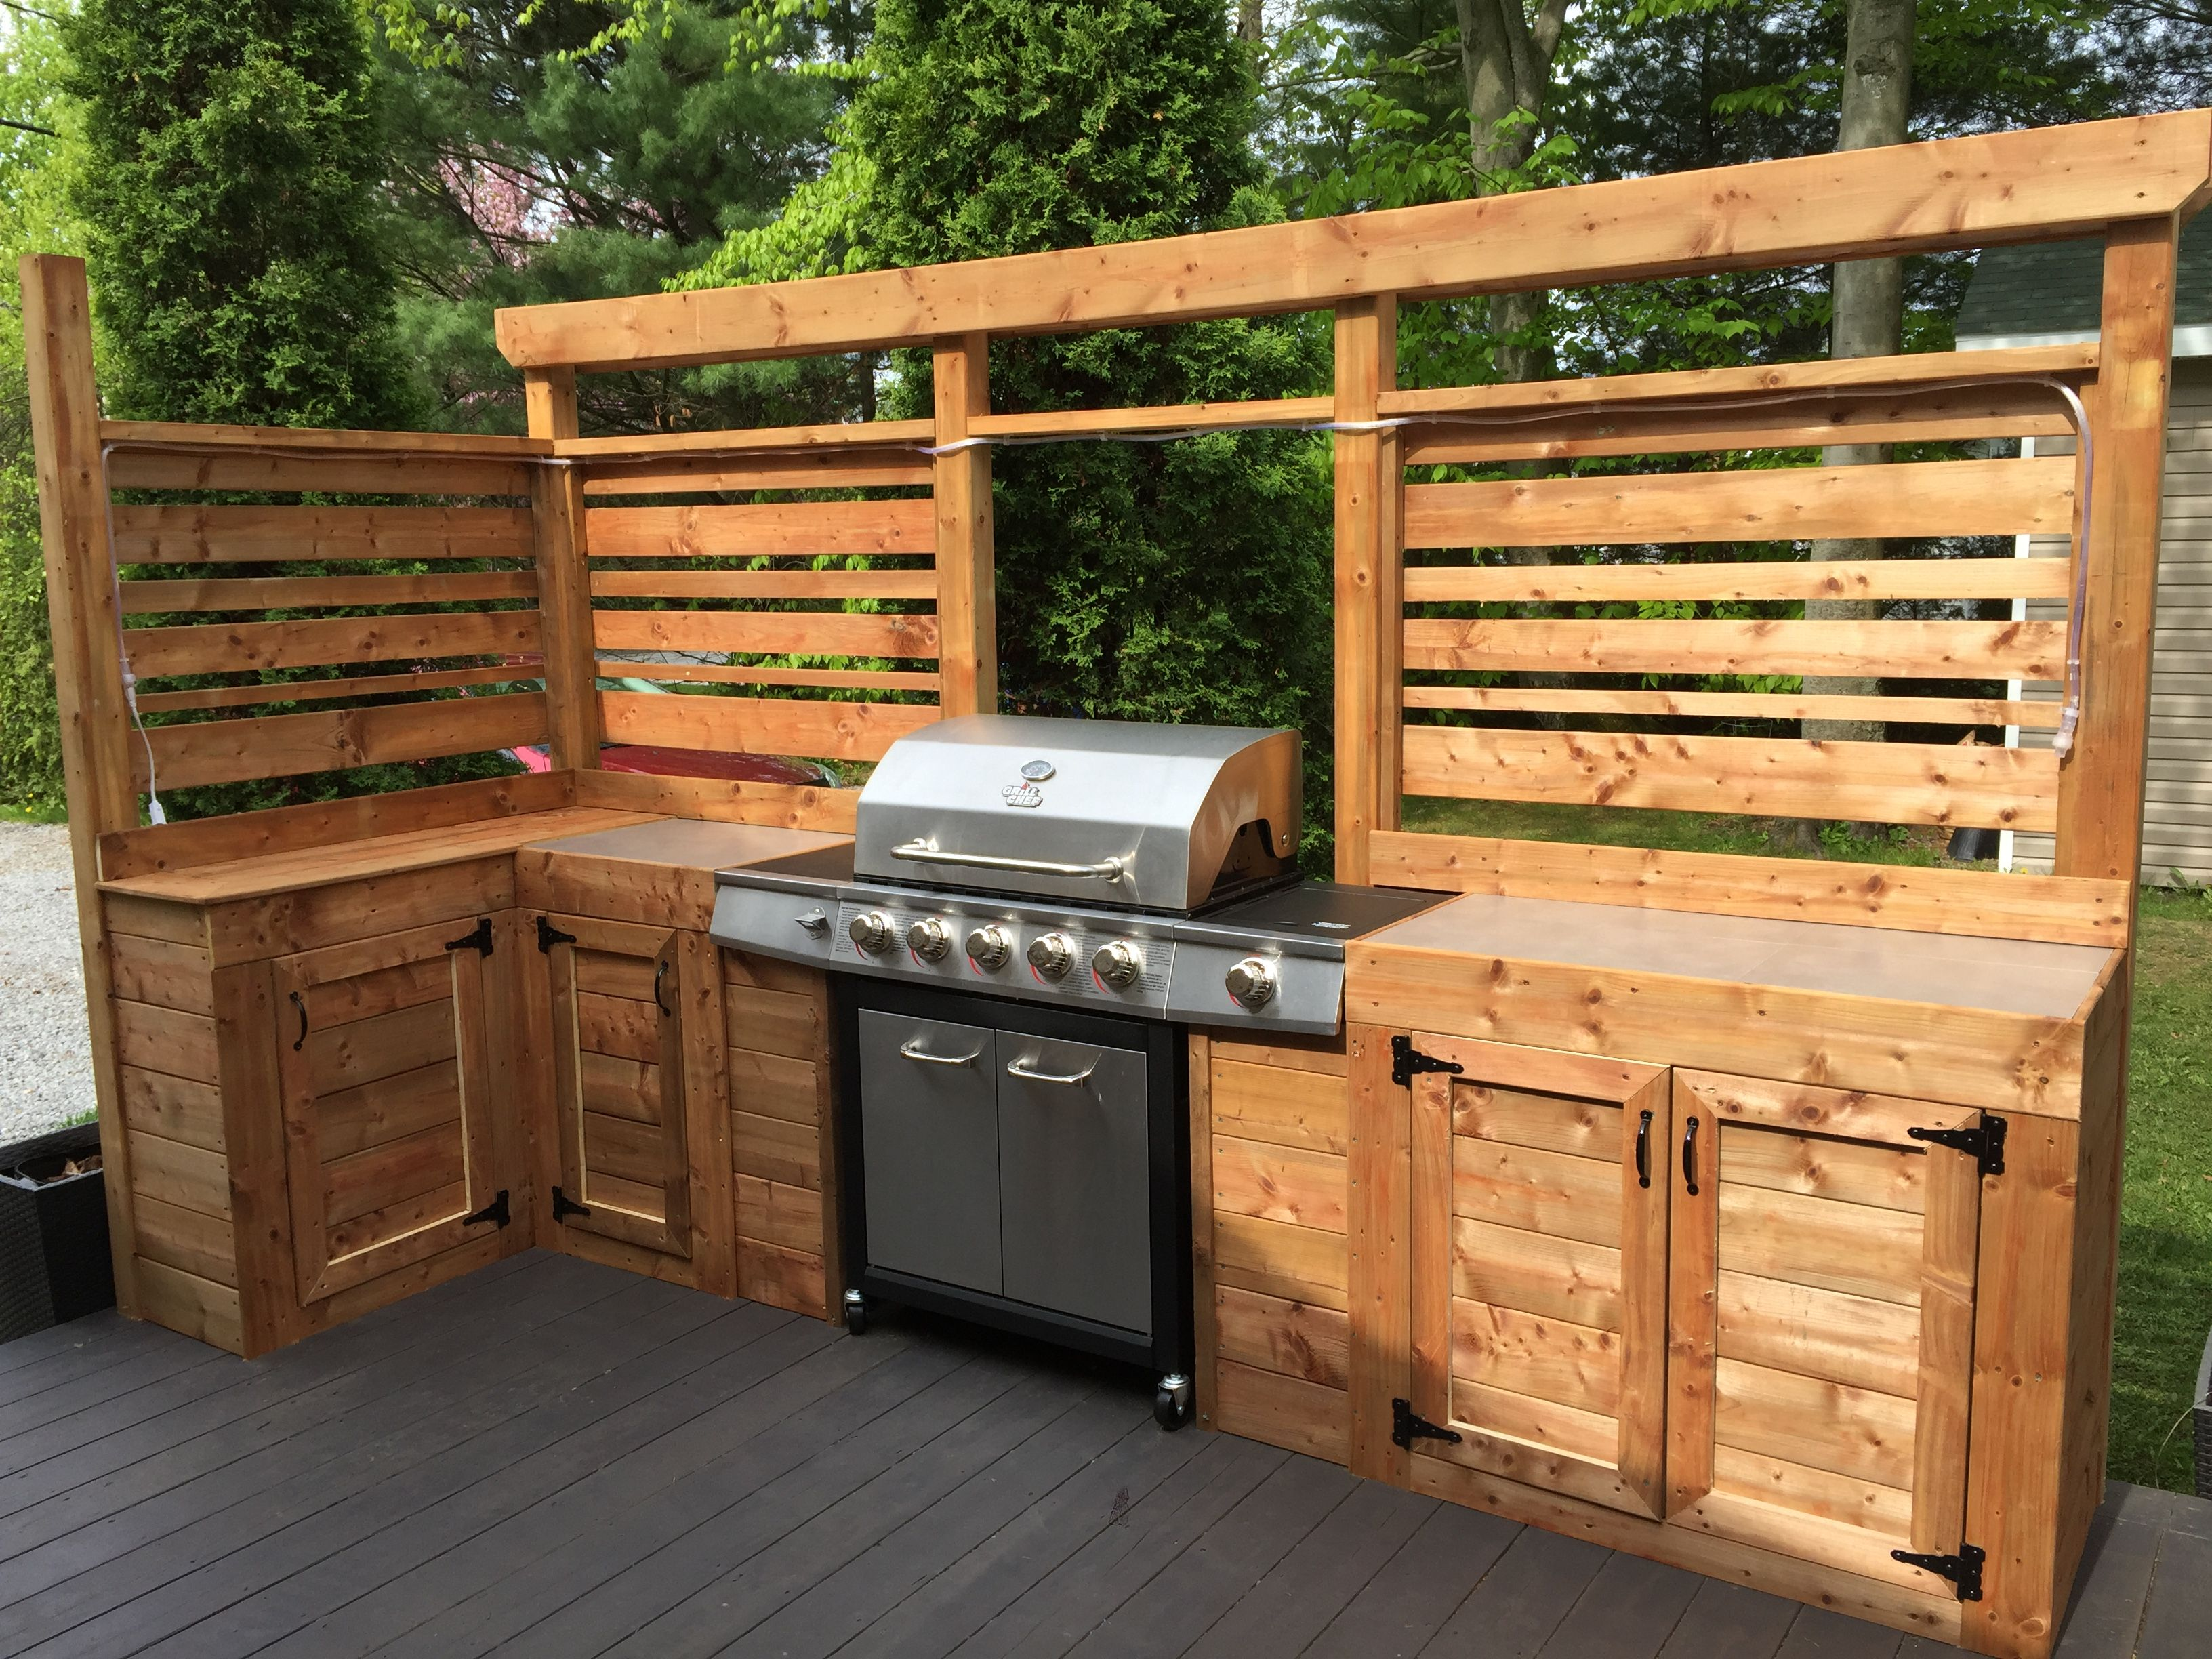 Amenagement Exterieur Coin Barbecue Mon Coin Bbq Terrasse Pinterest Shed Outdoor Kitchen